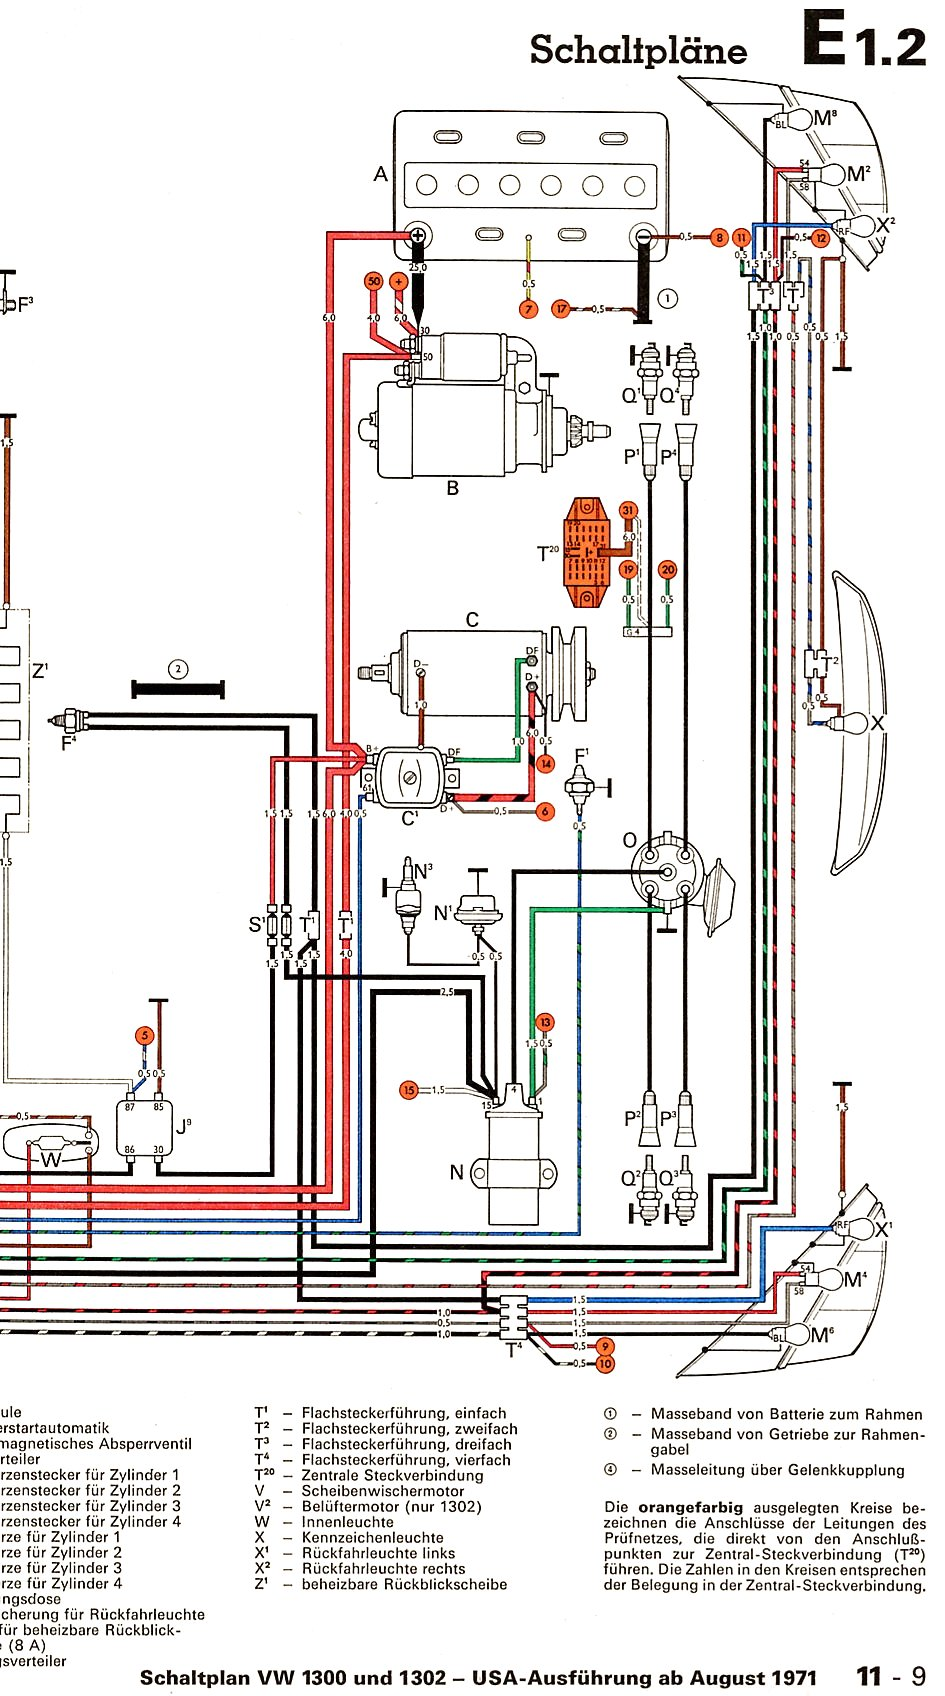 Touareg Wiring Diagram And Schematics Fuse Box Location 74 Beetle Ignition Shoptalkforums Com Rh 04 Vw